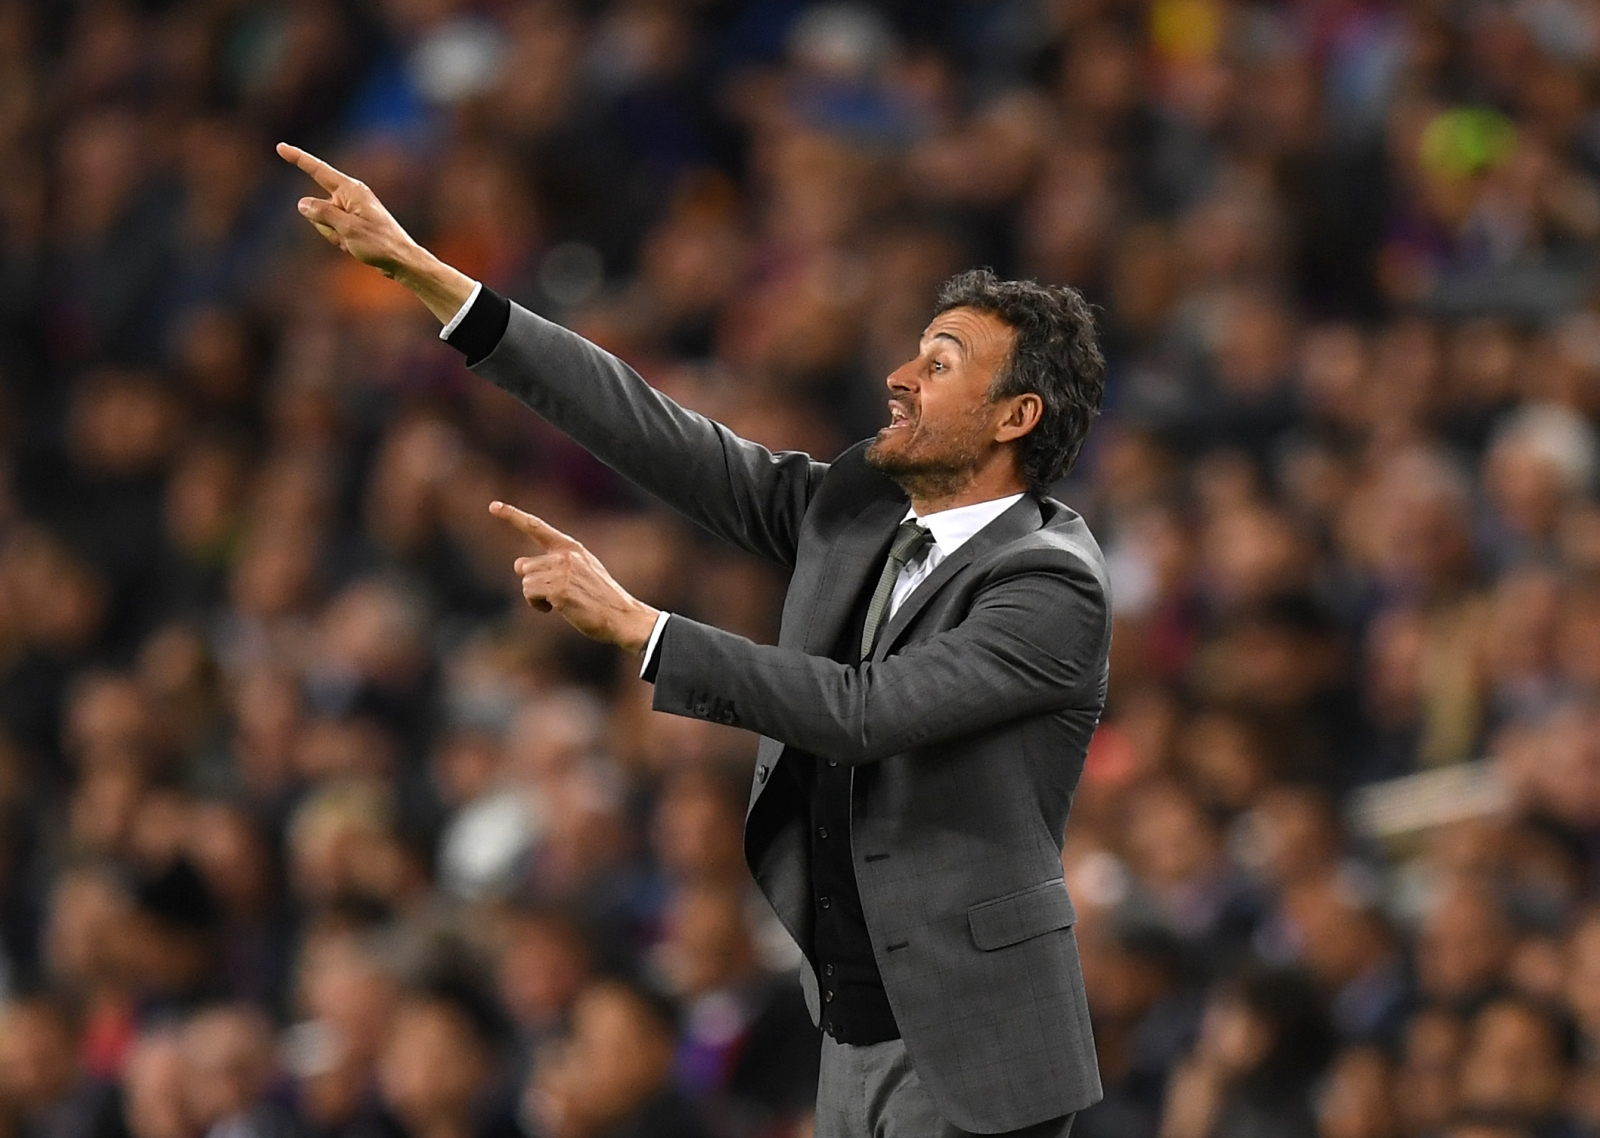 https://d.ibtimes.co.uk/en/full/1615679/luis-enrique.jpg